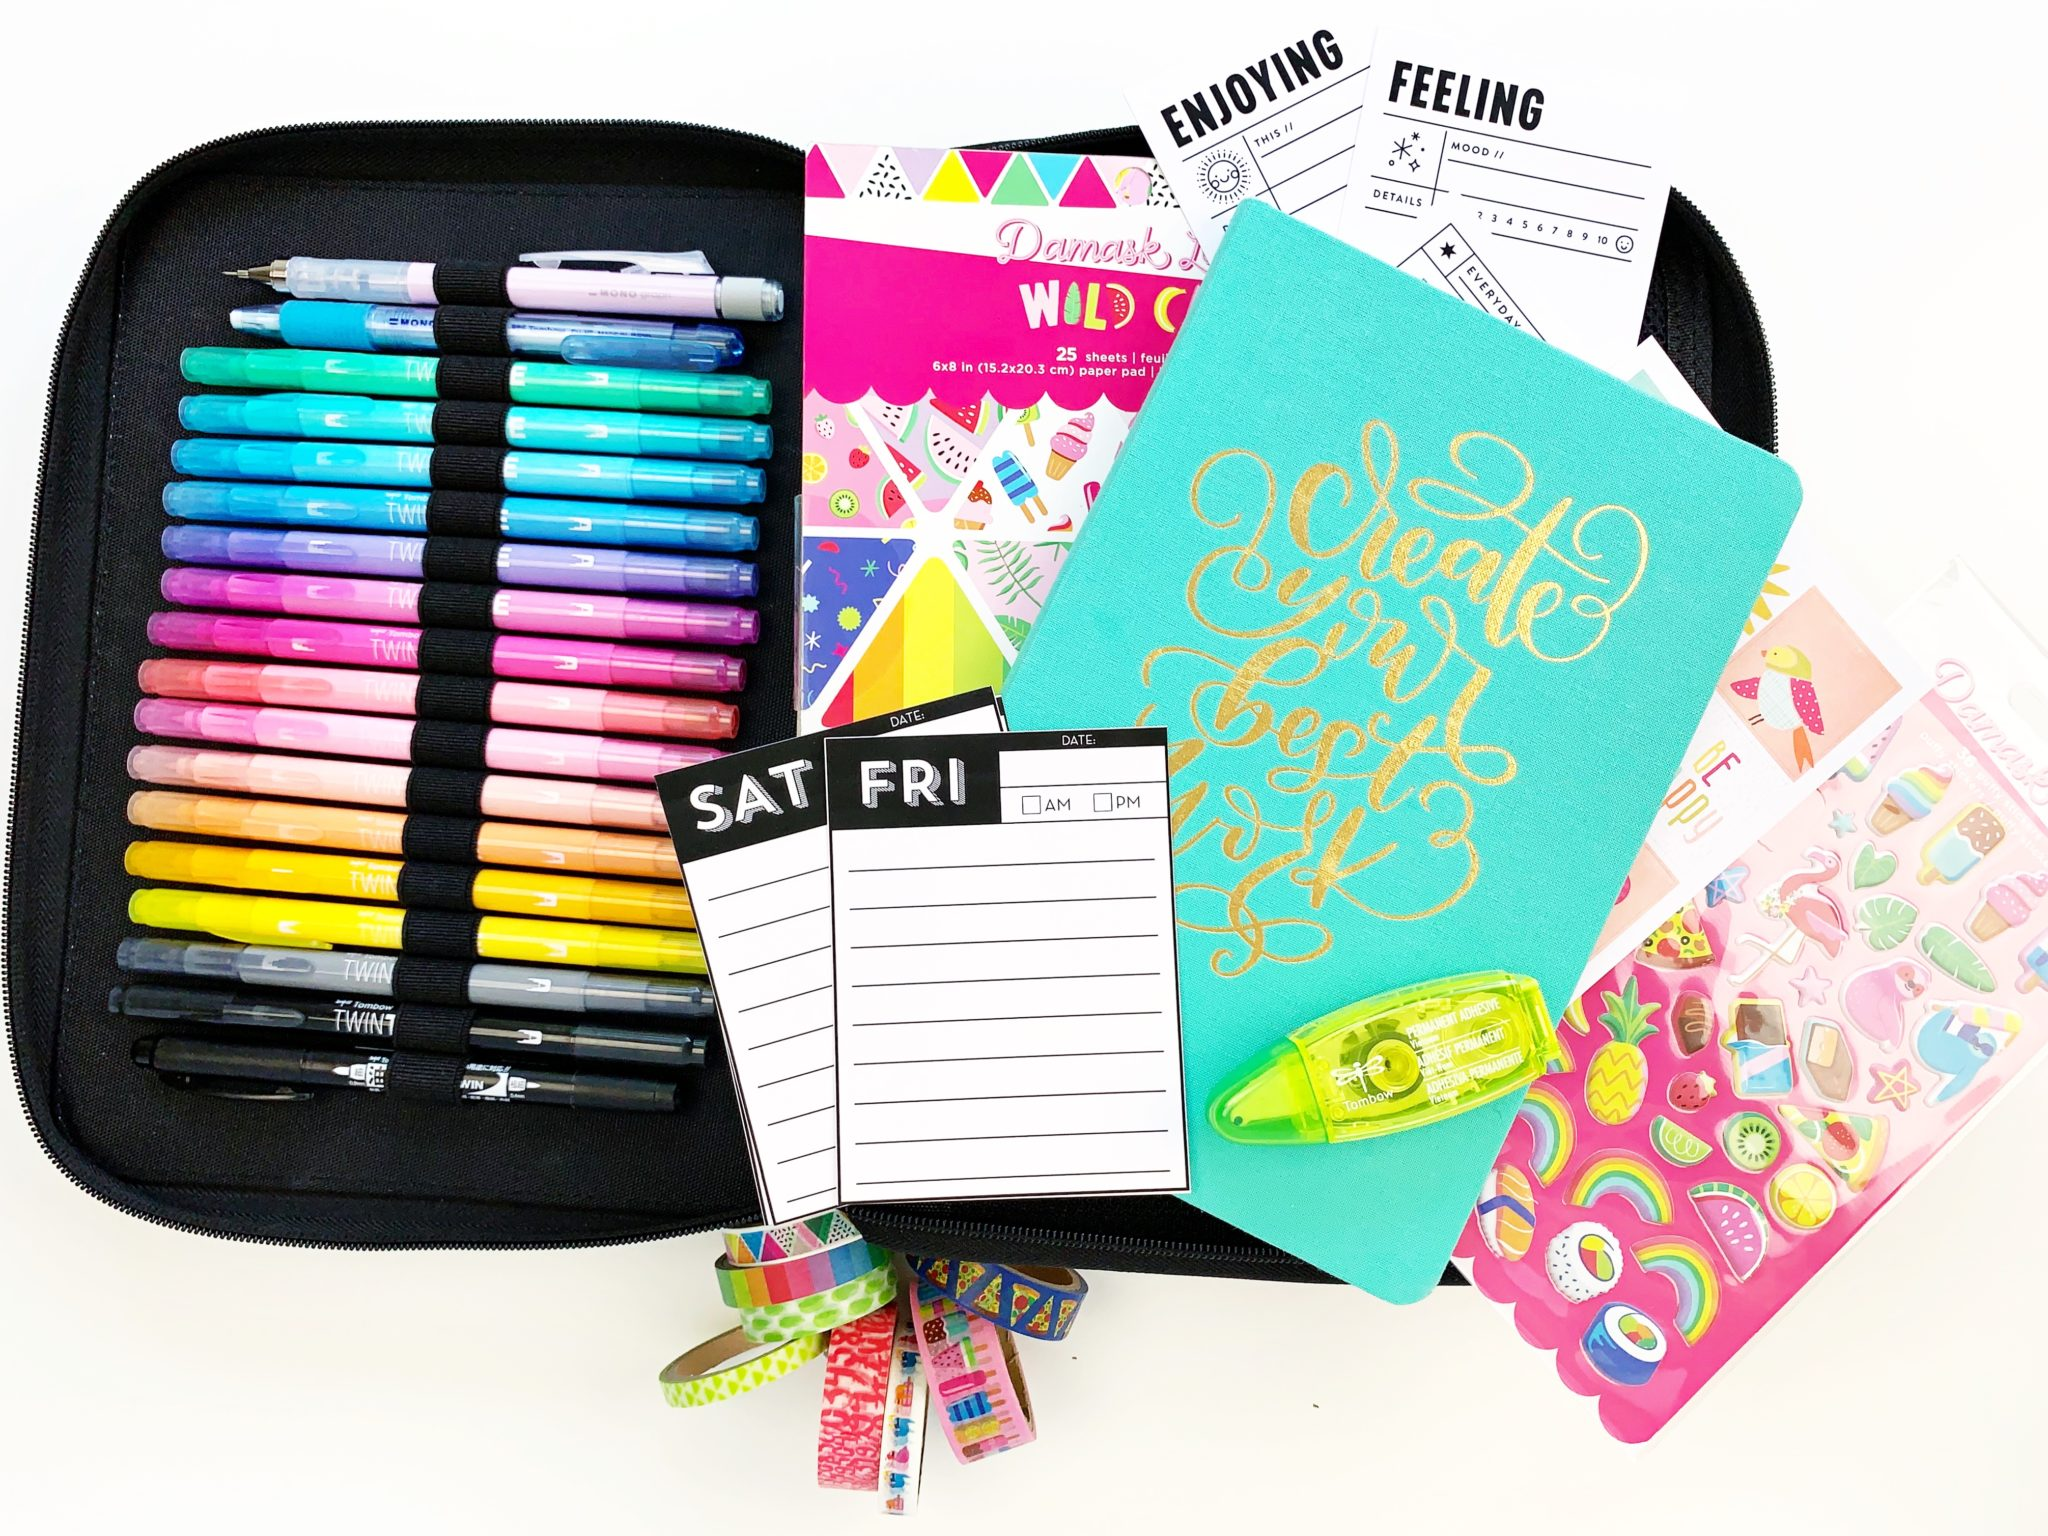 Put a few items on the Tombow Zippered Marker Storage Case to make a crafty kit to take on the go! #tombow #craft